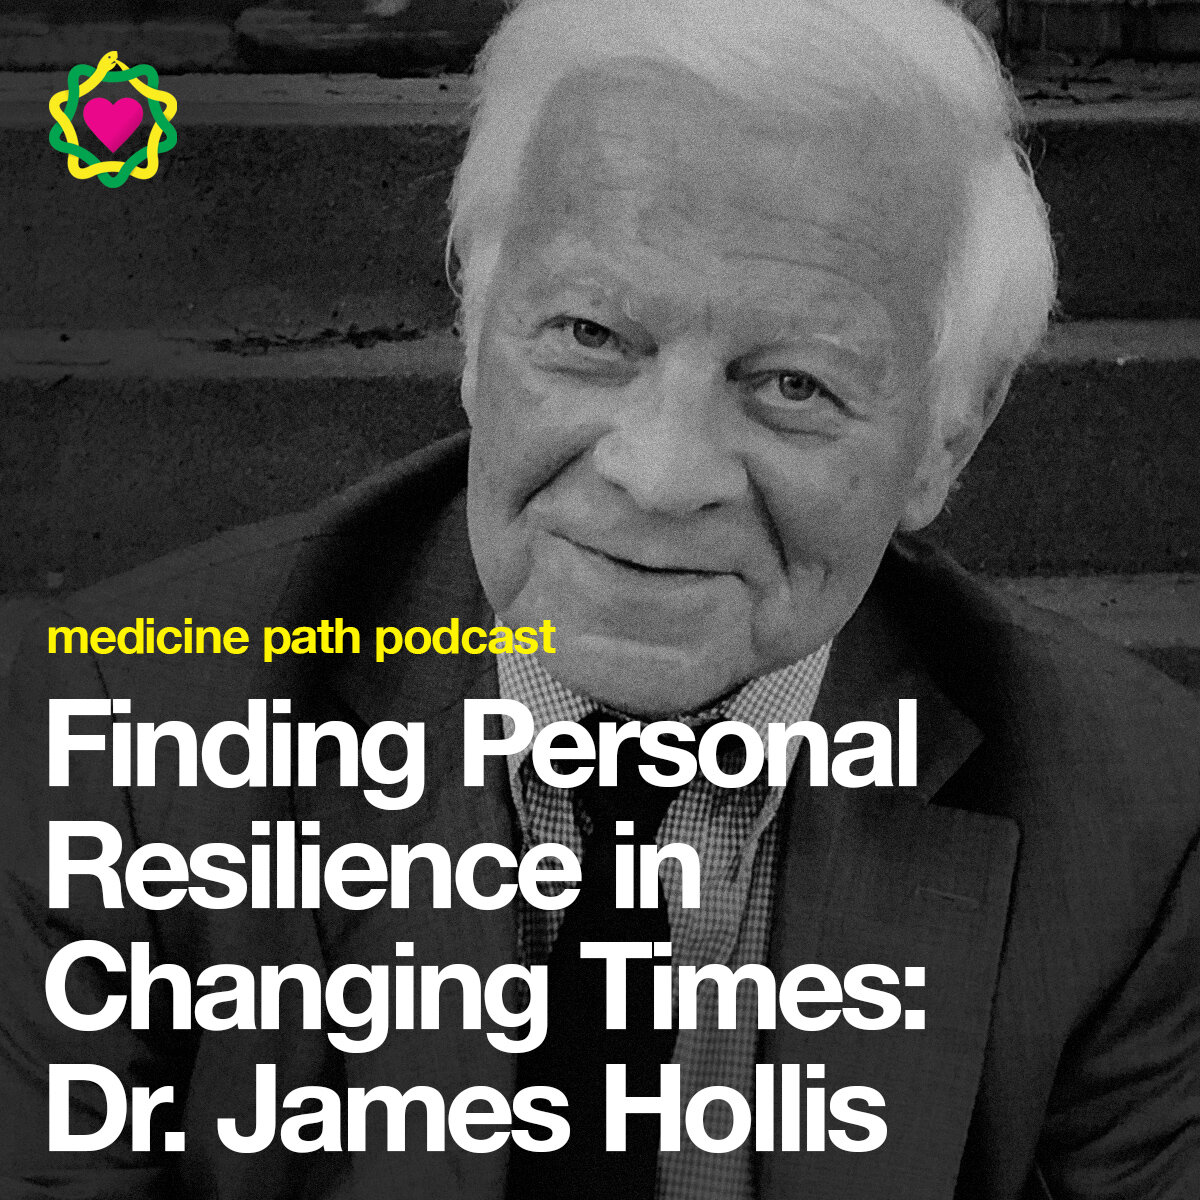 MPP65 Dr. James Hollis: Finding Personal Resilience in Changing Times